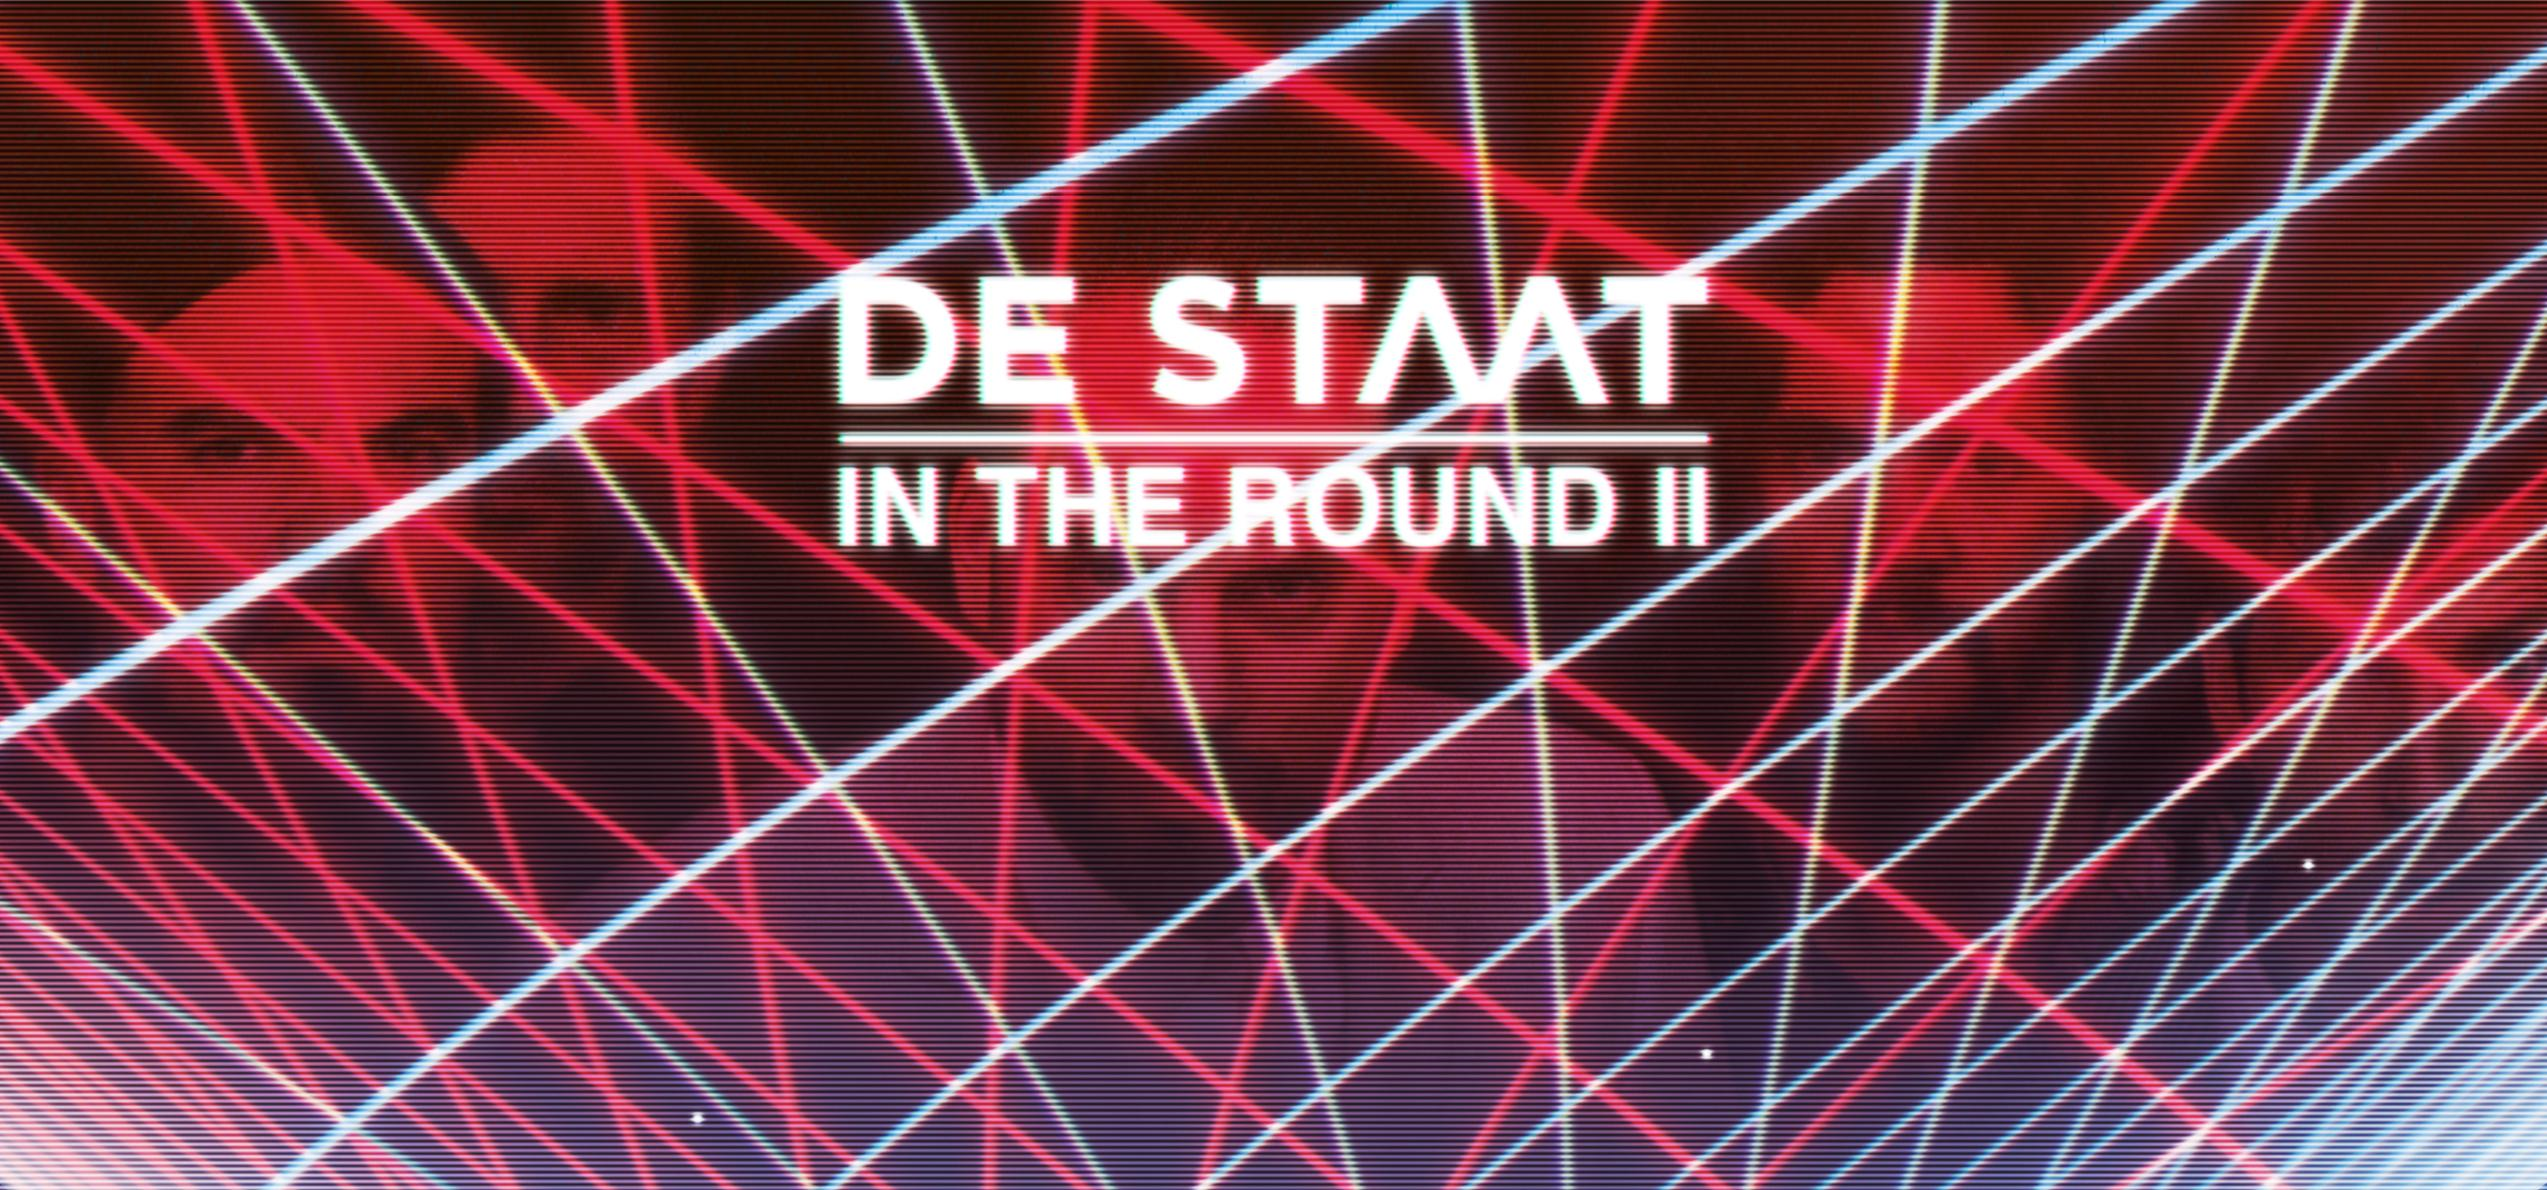 De Staat In The Round II